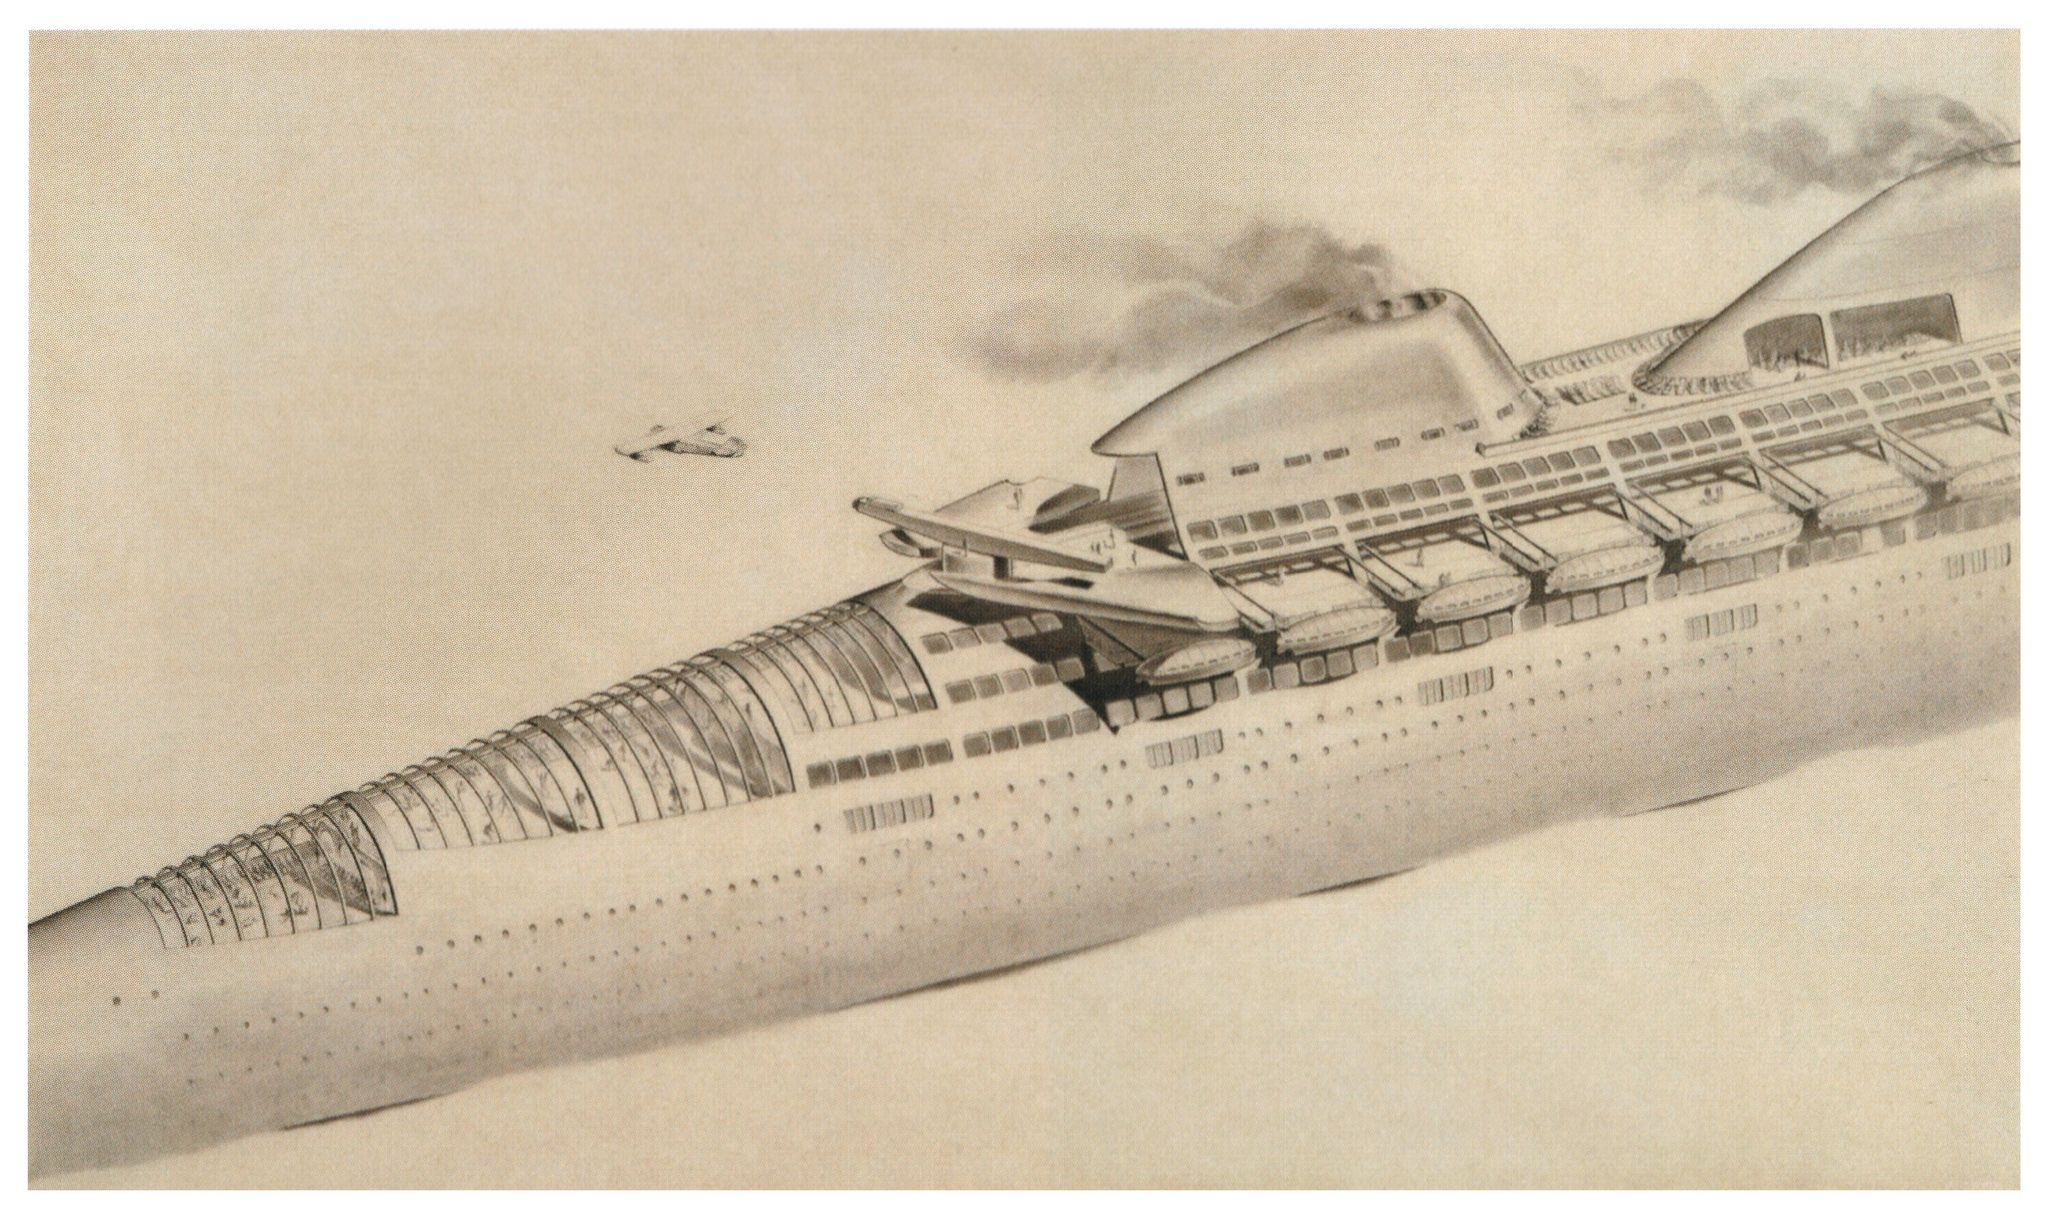 1939 futuristic cruise ship design by Norman Bel Geddes | Vehicles ...